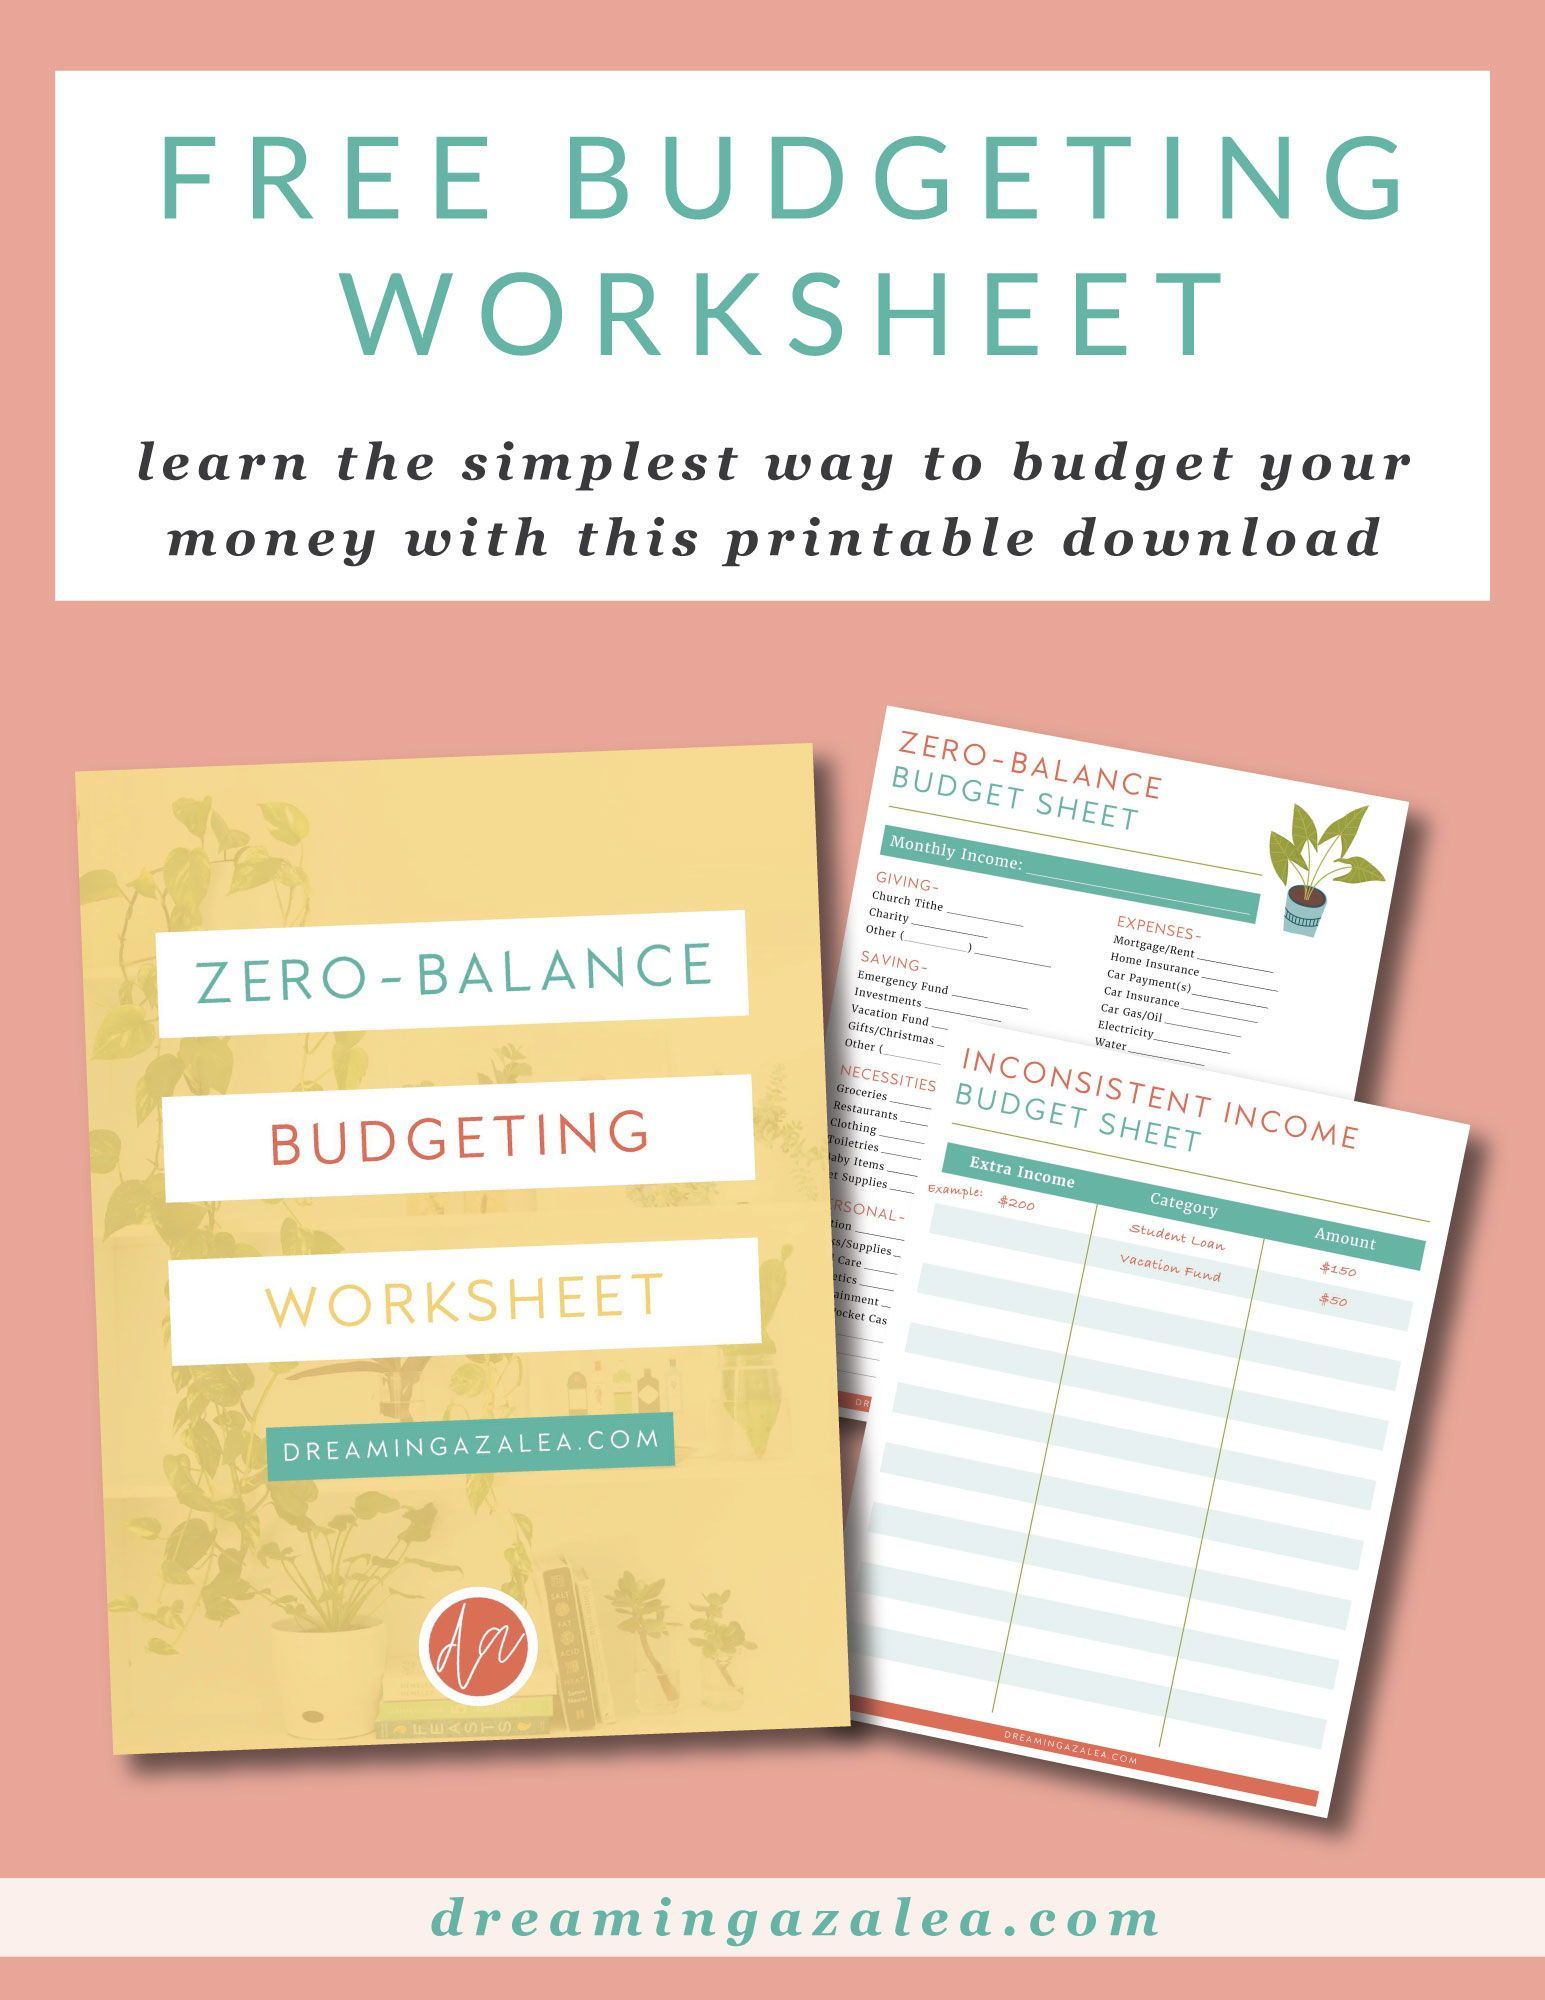 Learn To Budget With This Free Zero Balance Budgeting